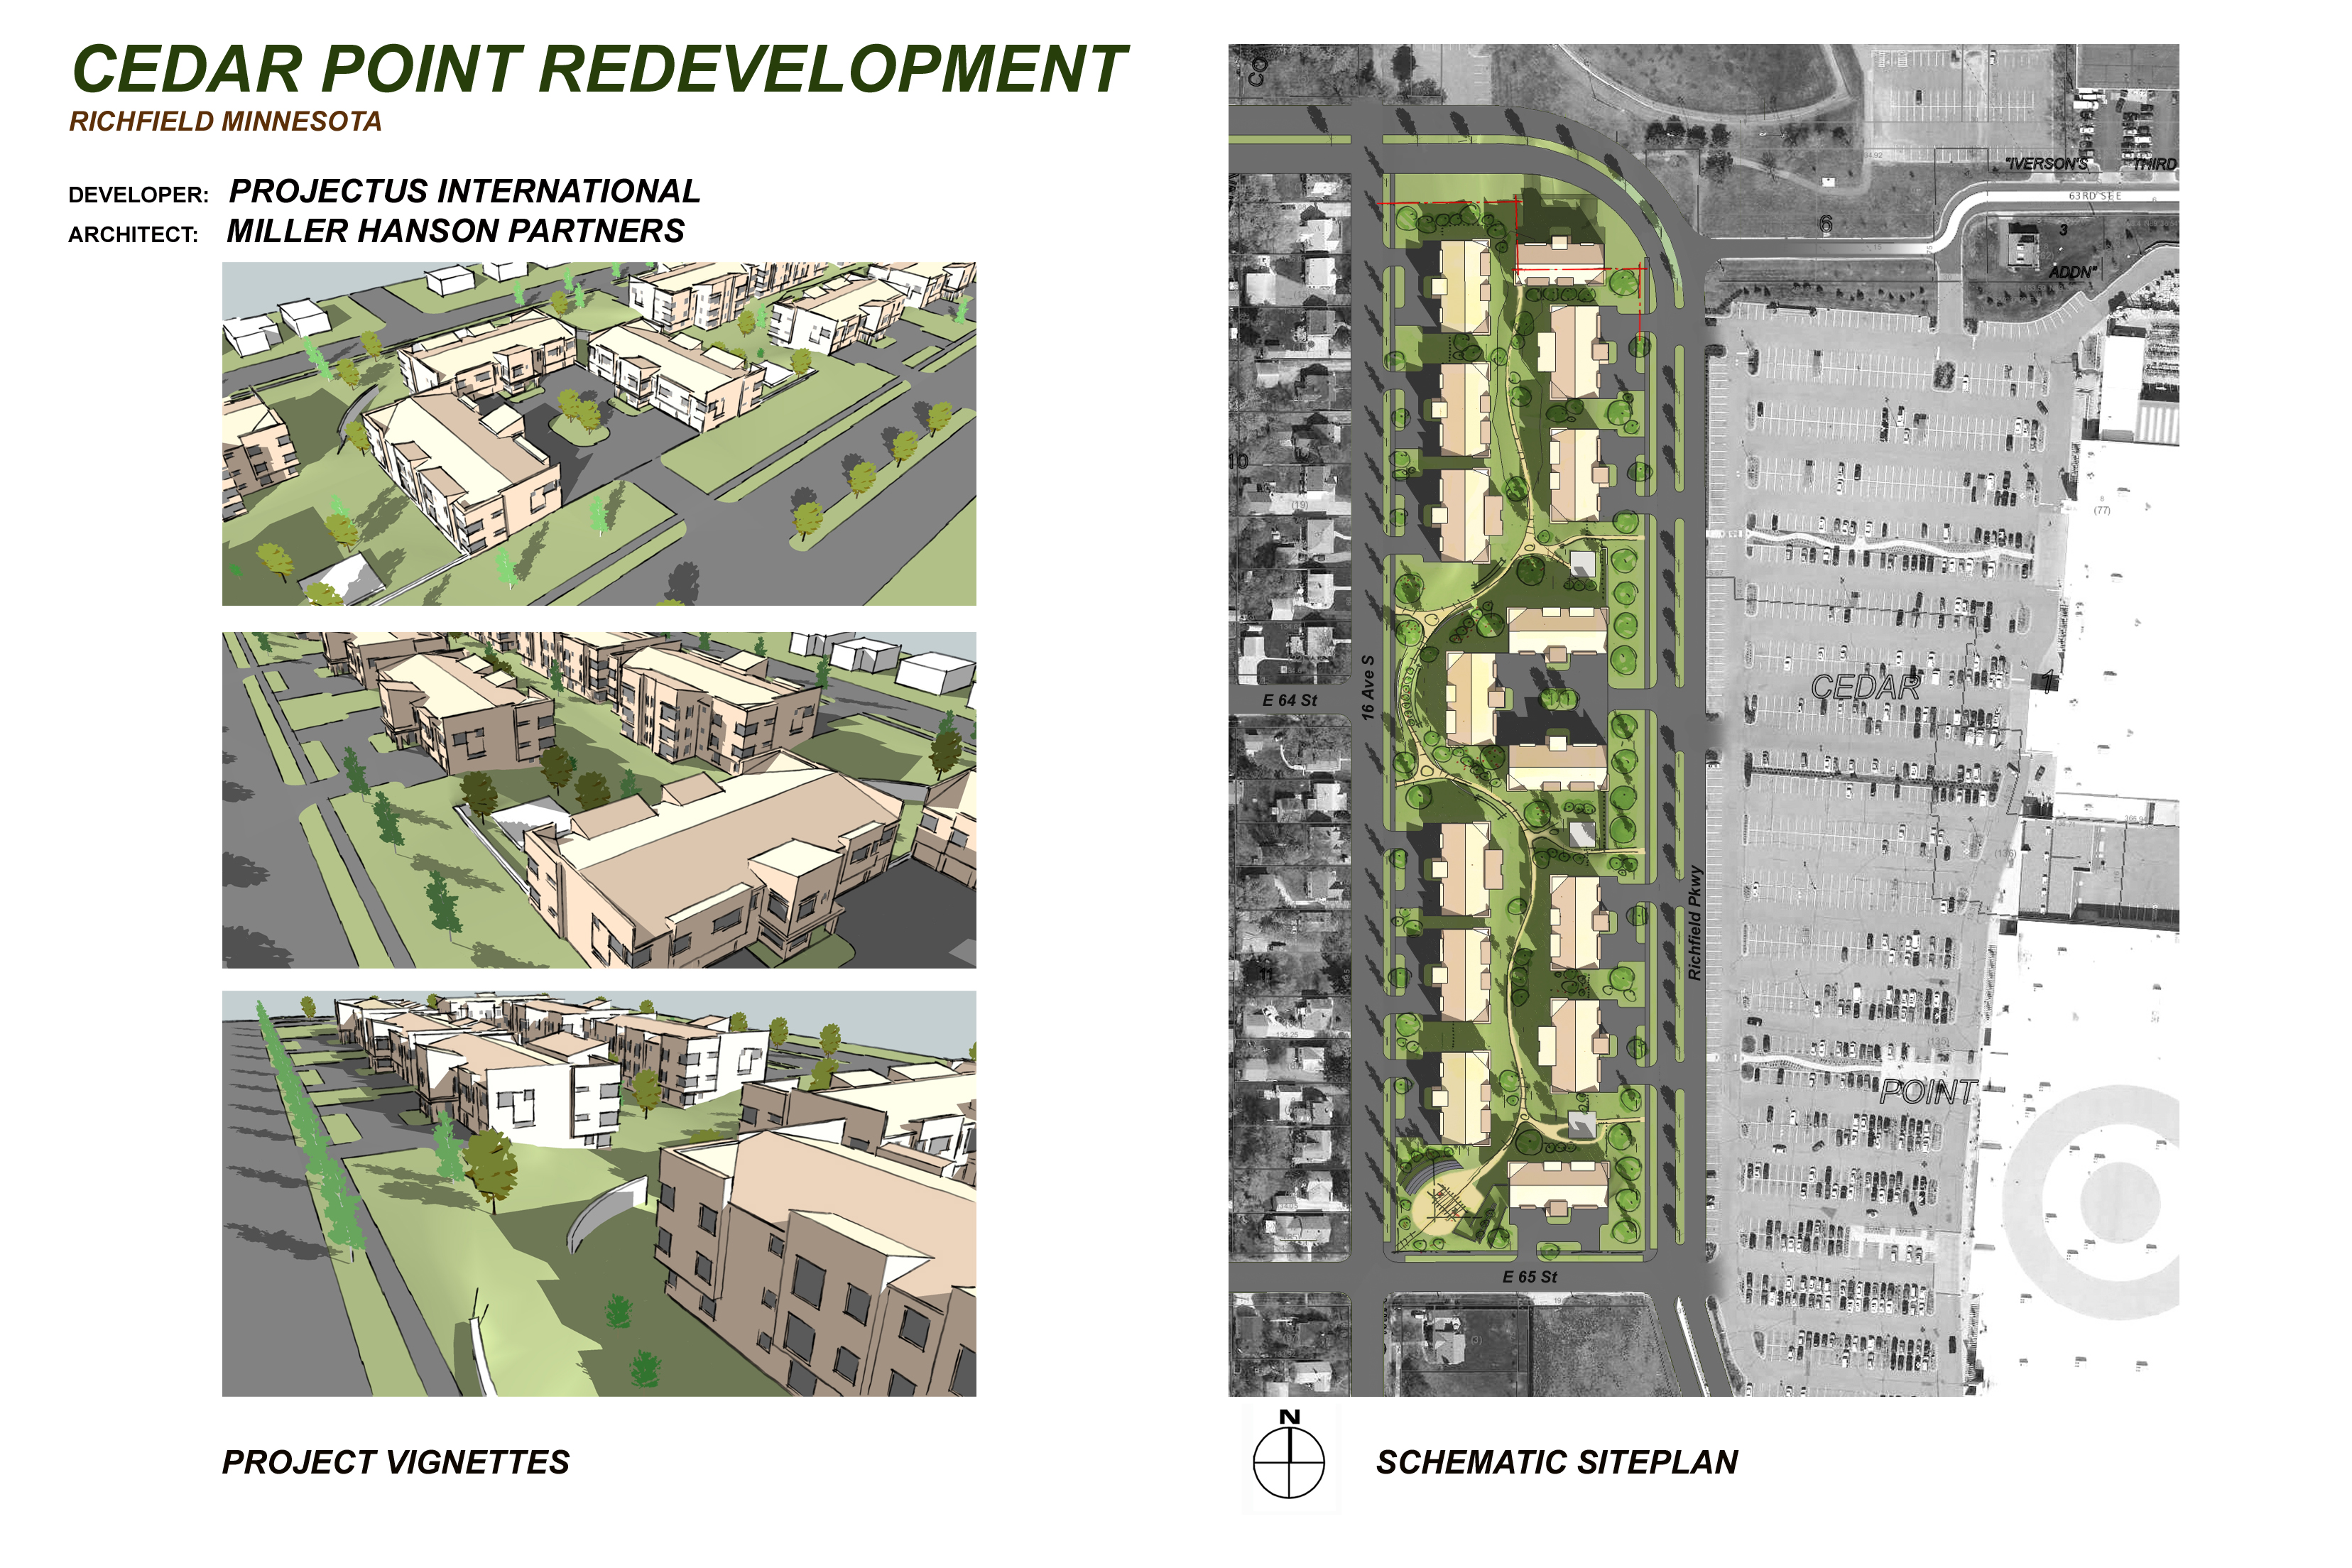 Cedar Point Redevelopment Project for City of Richfield, Minnesota, U.S.